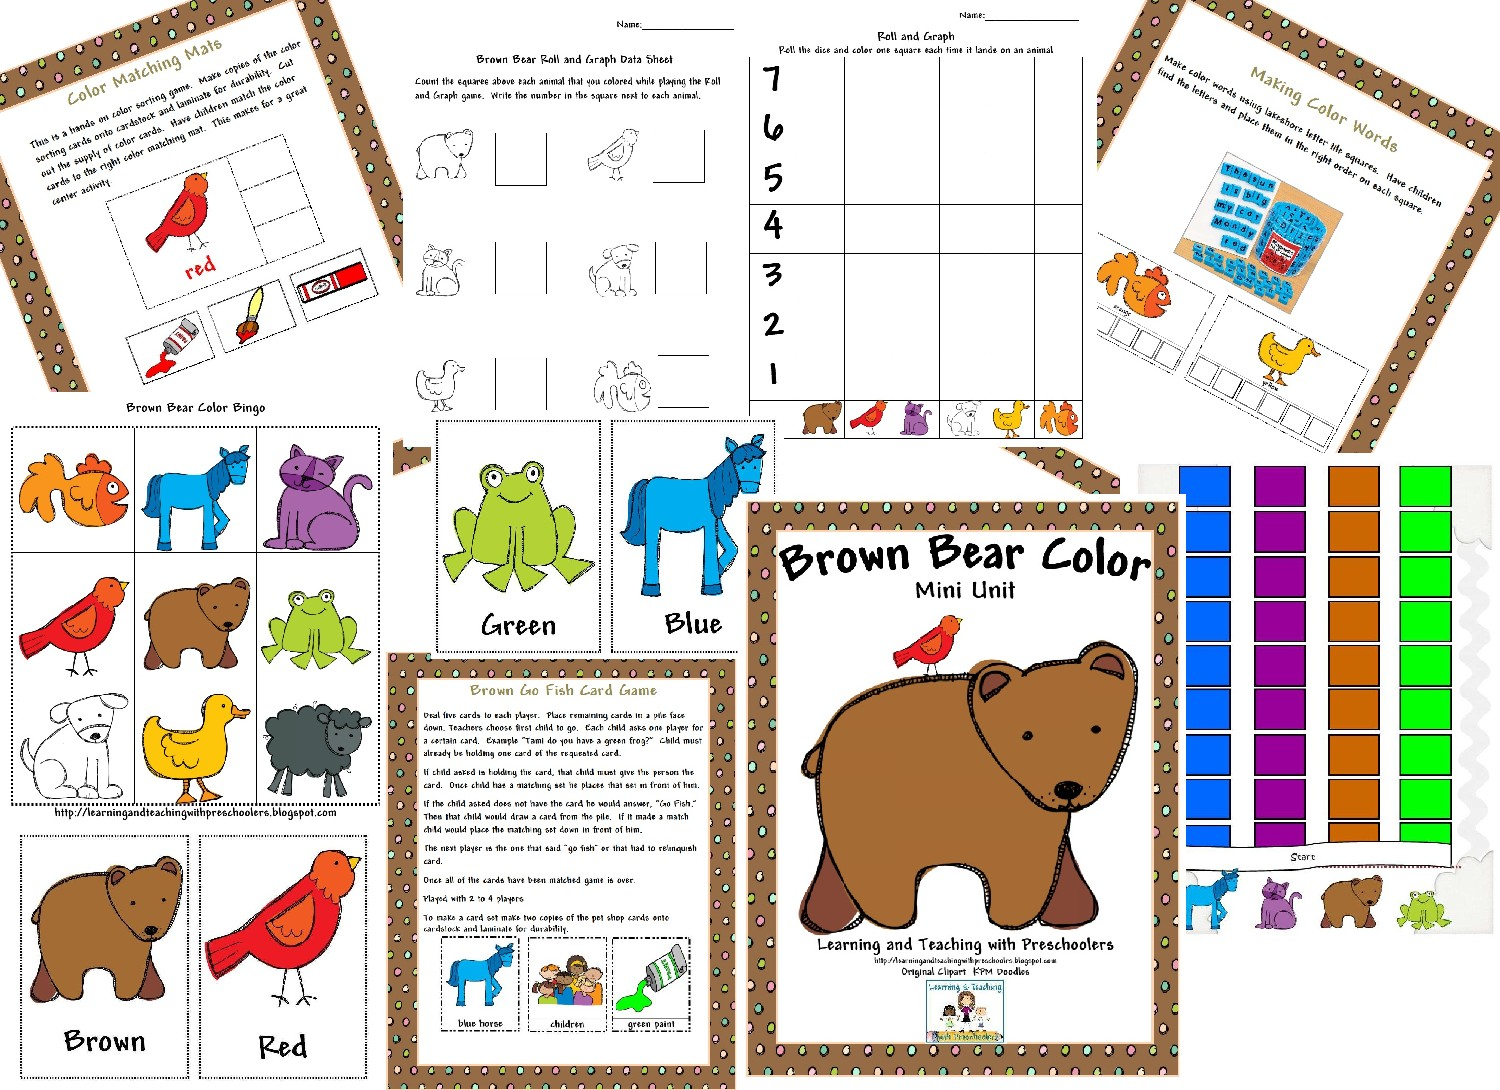 learning and teaching with preschoolers brown bear freebie